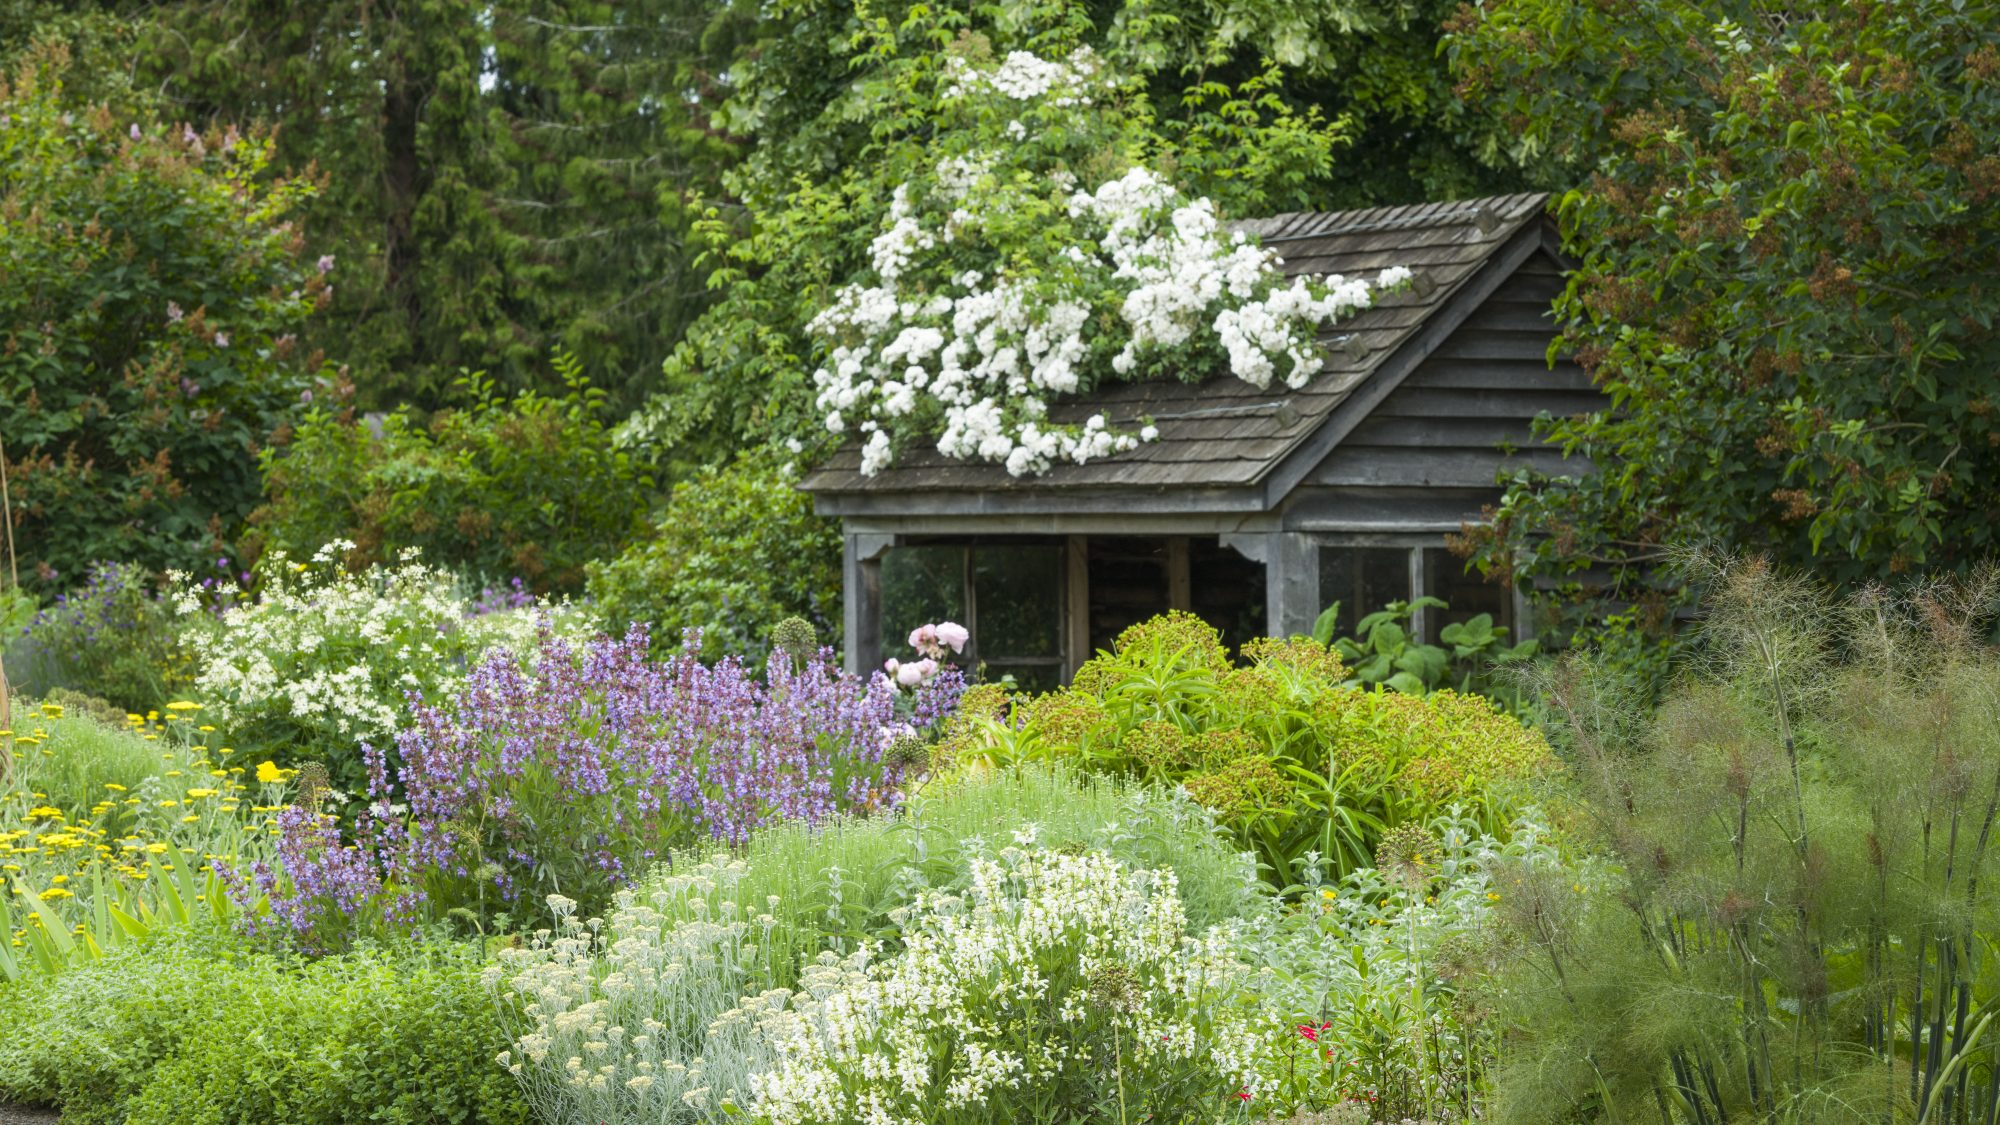 The wooden shelter in the Scented Garden, tucked away behind a flurry of pastel flowers.